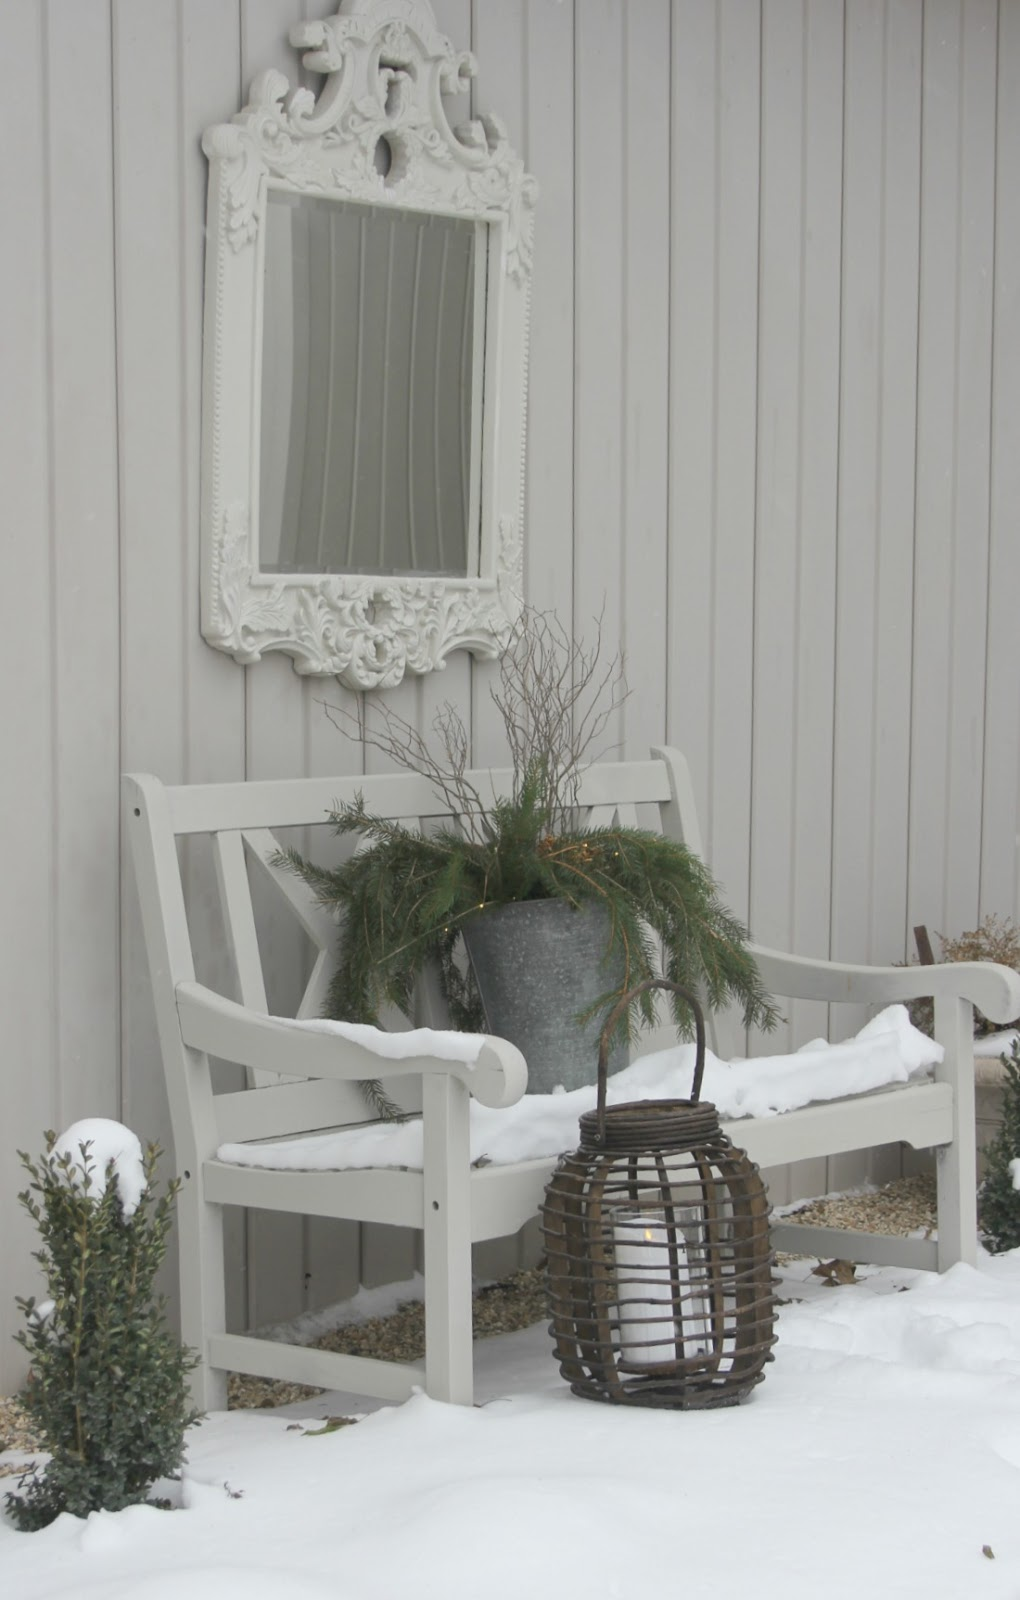 Serene white bench and mirror with winter holiday decor - Hello Lovely Studio